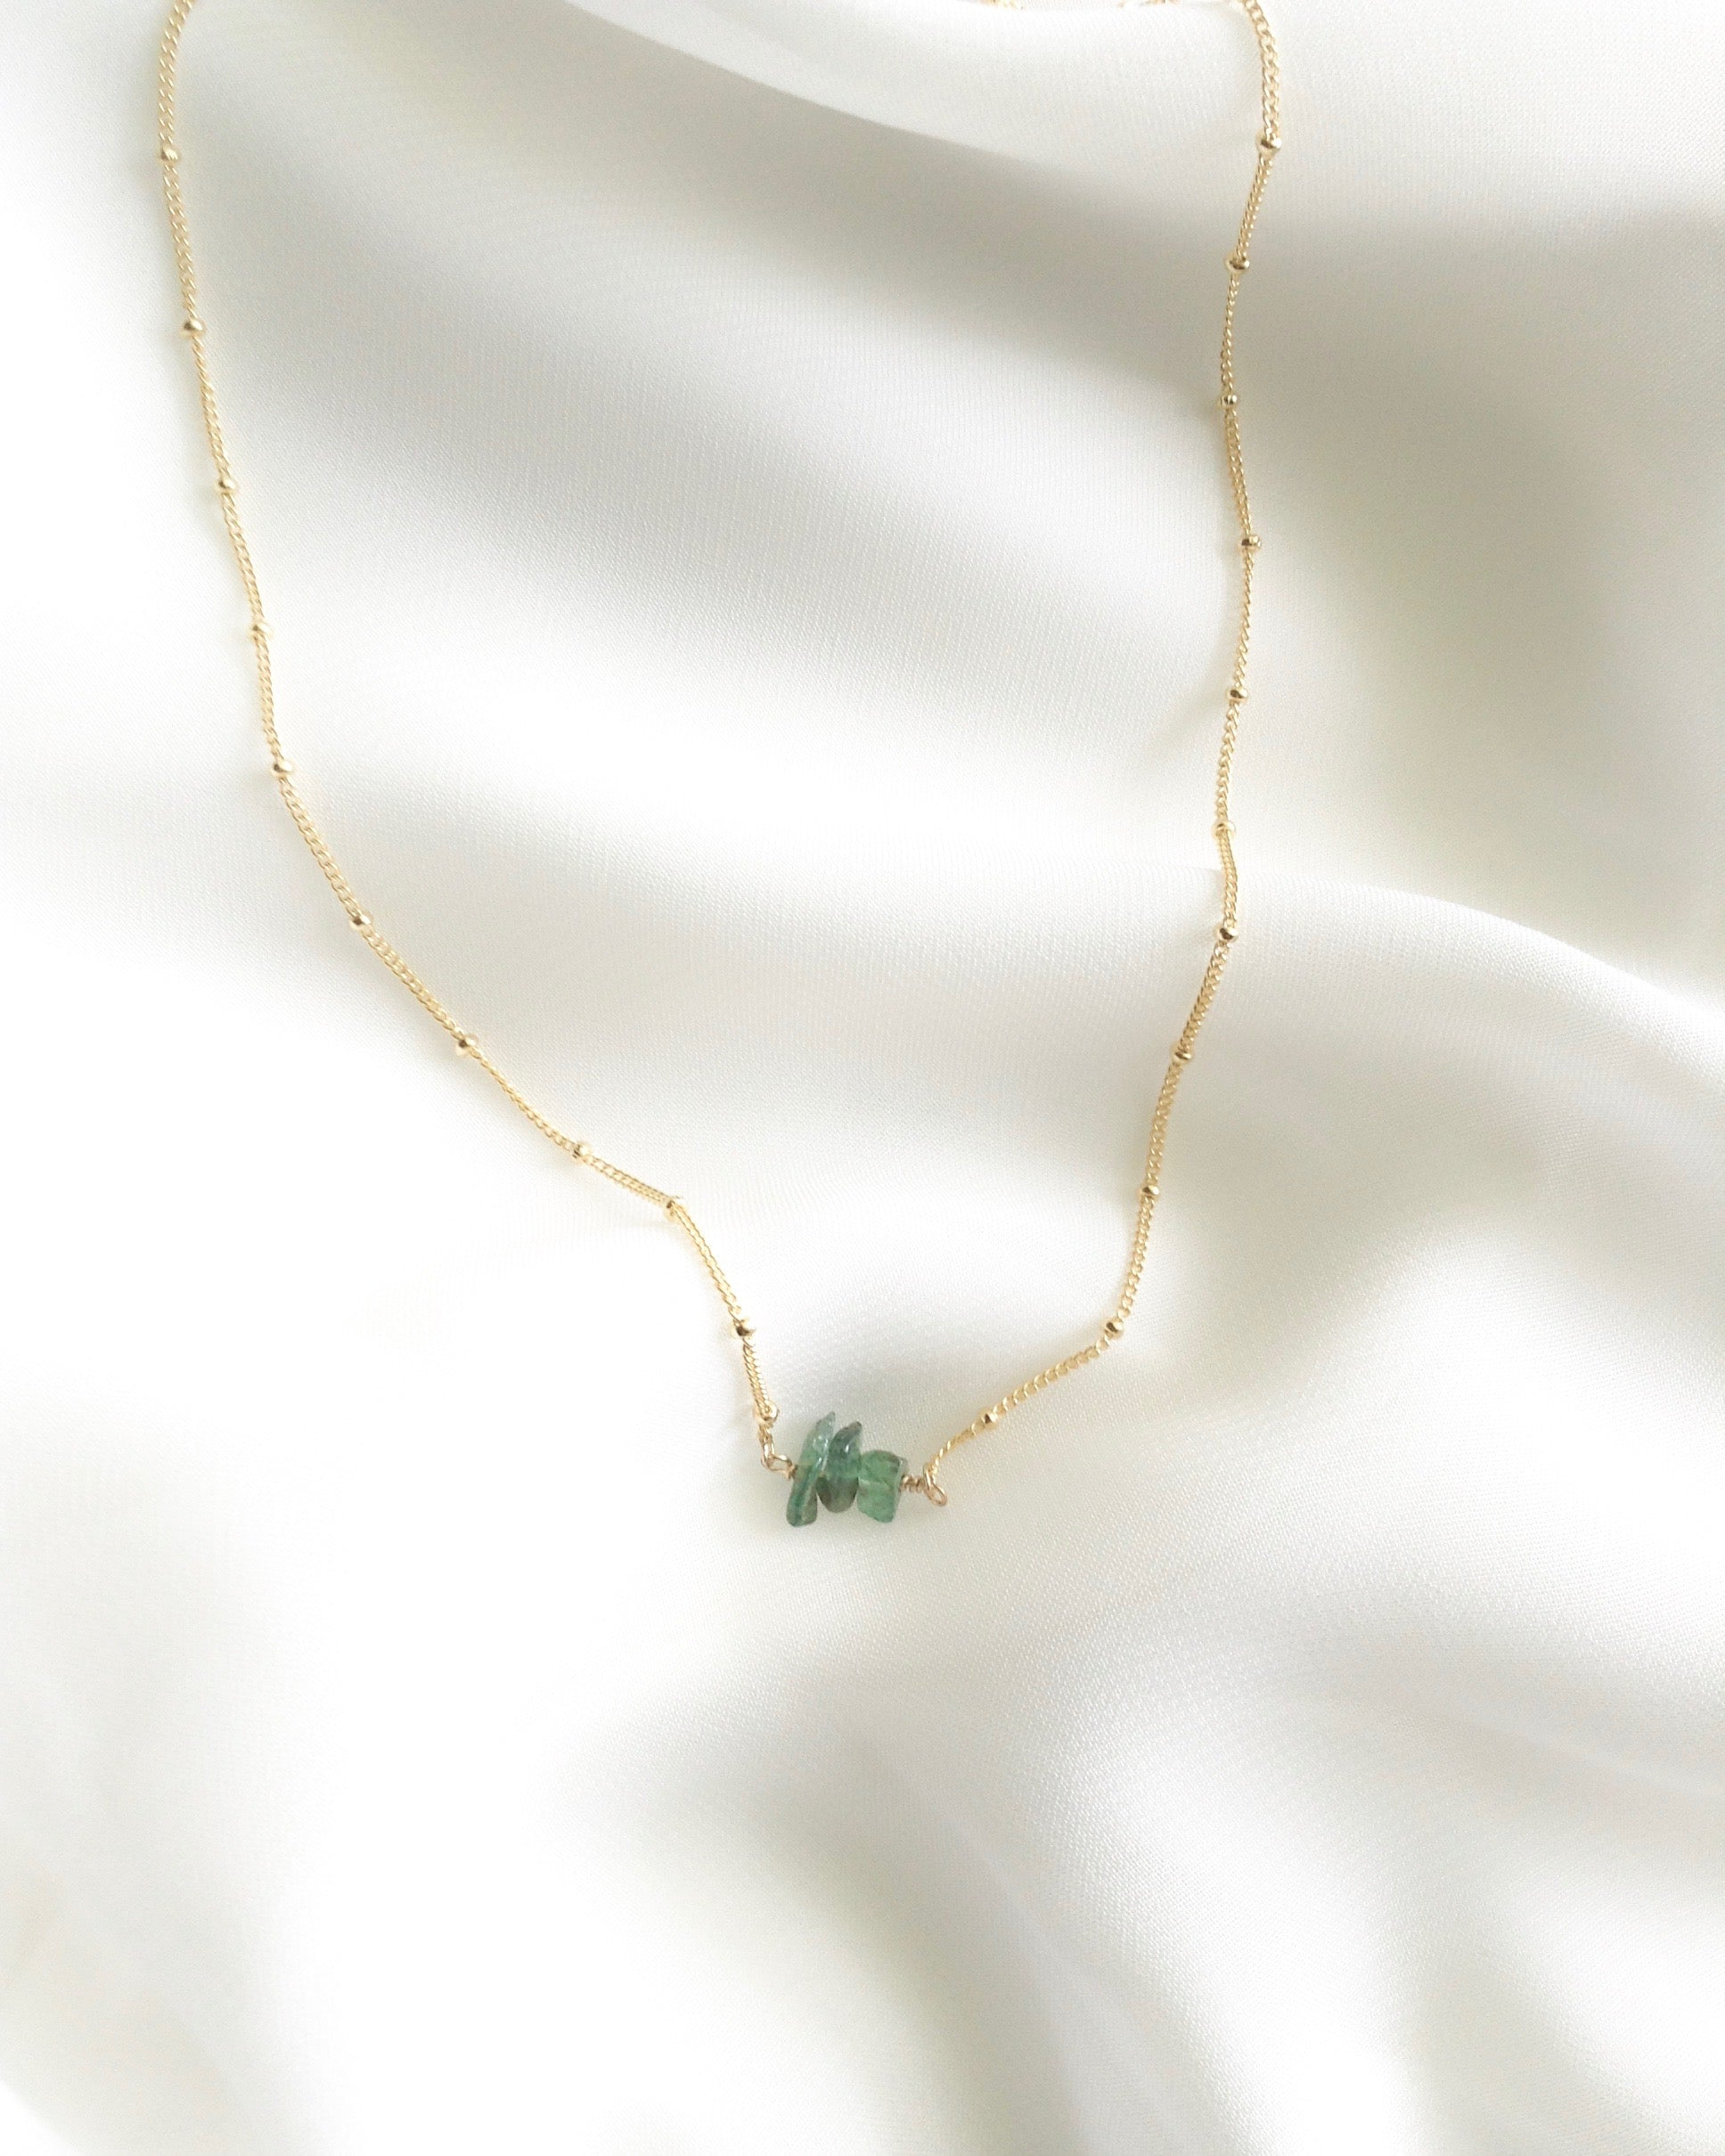 Raw Emerald Tiny Gemstone Necklace in Gold Filled or Sterling Silver | IB Jewelry